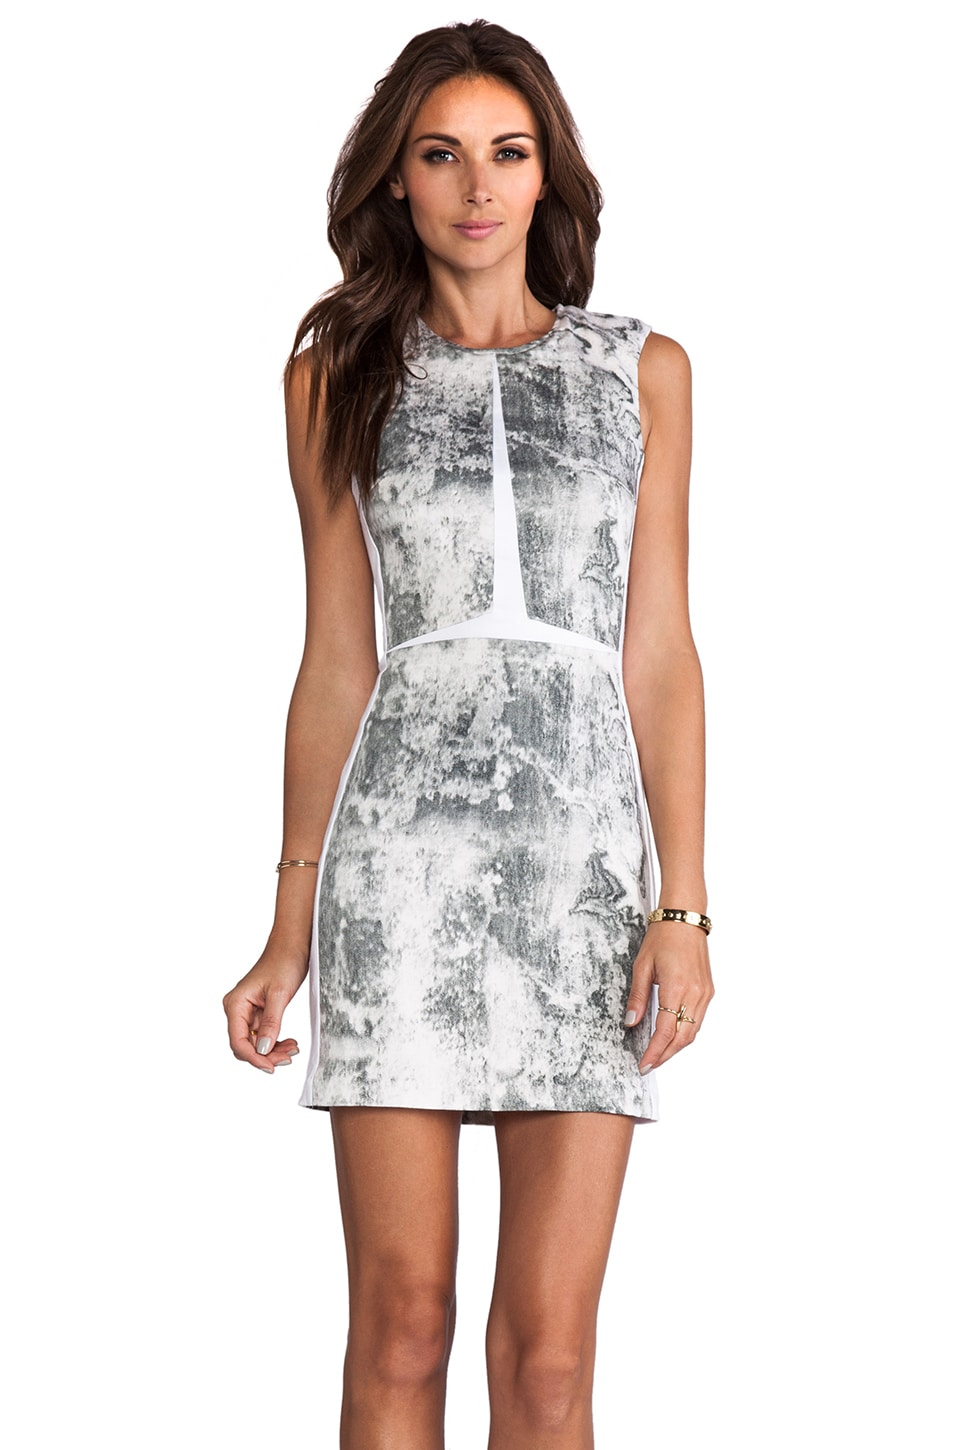 Maurie & Eve Flashback Dress in Concrete